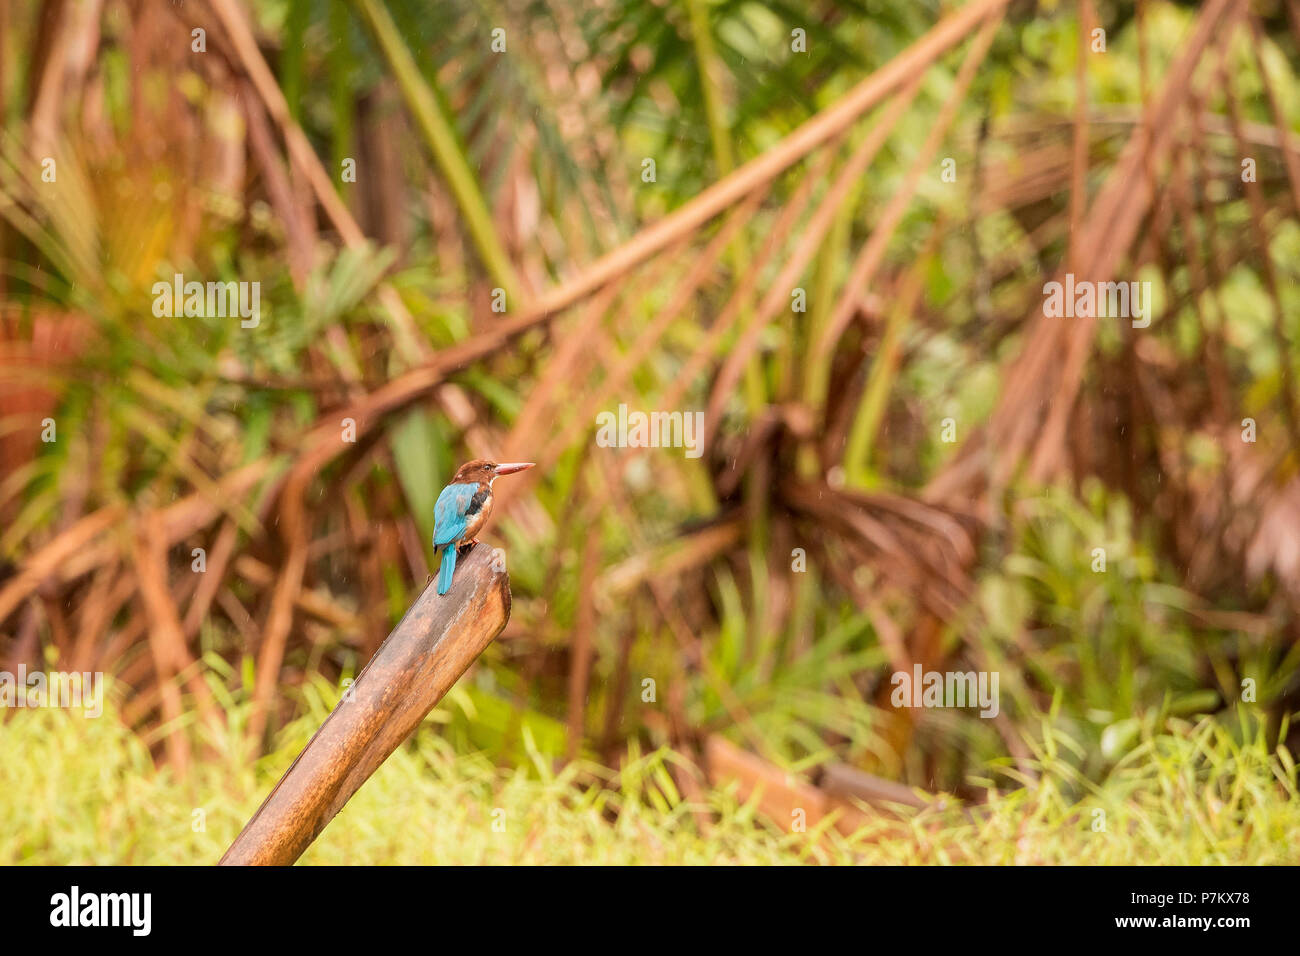 White-throated / White-breasted Kingfisher, Halcyon smyrnensis - Stock Image